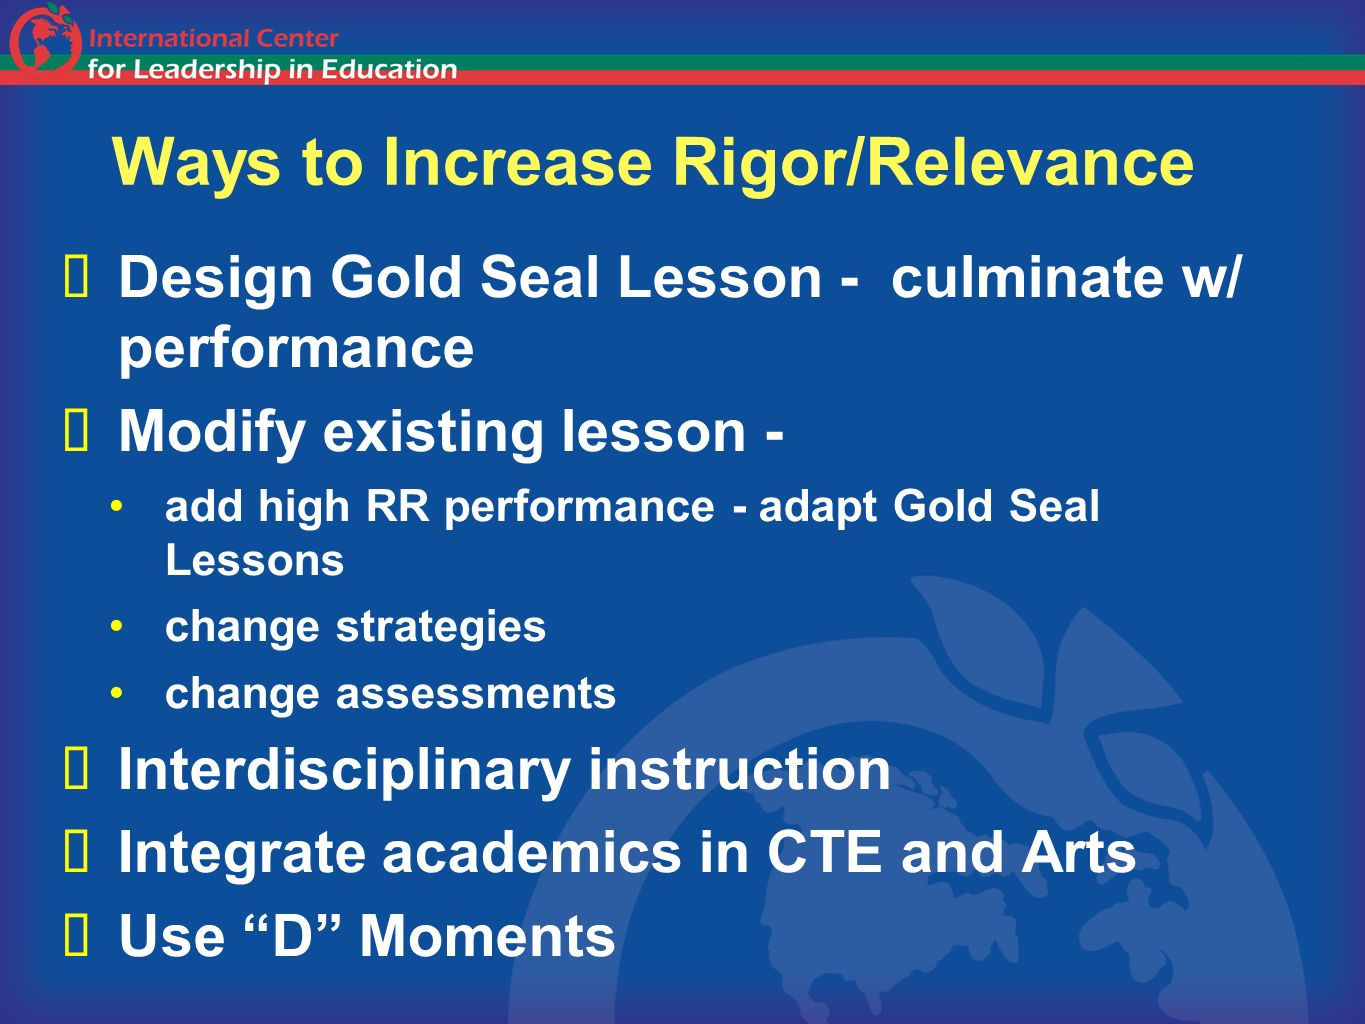 Ways to Increase Rigor/Relevance